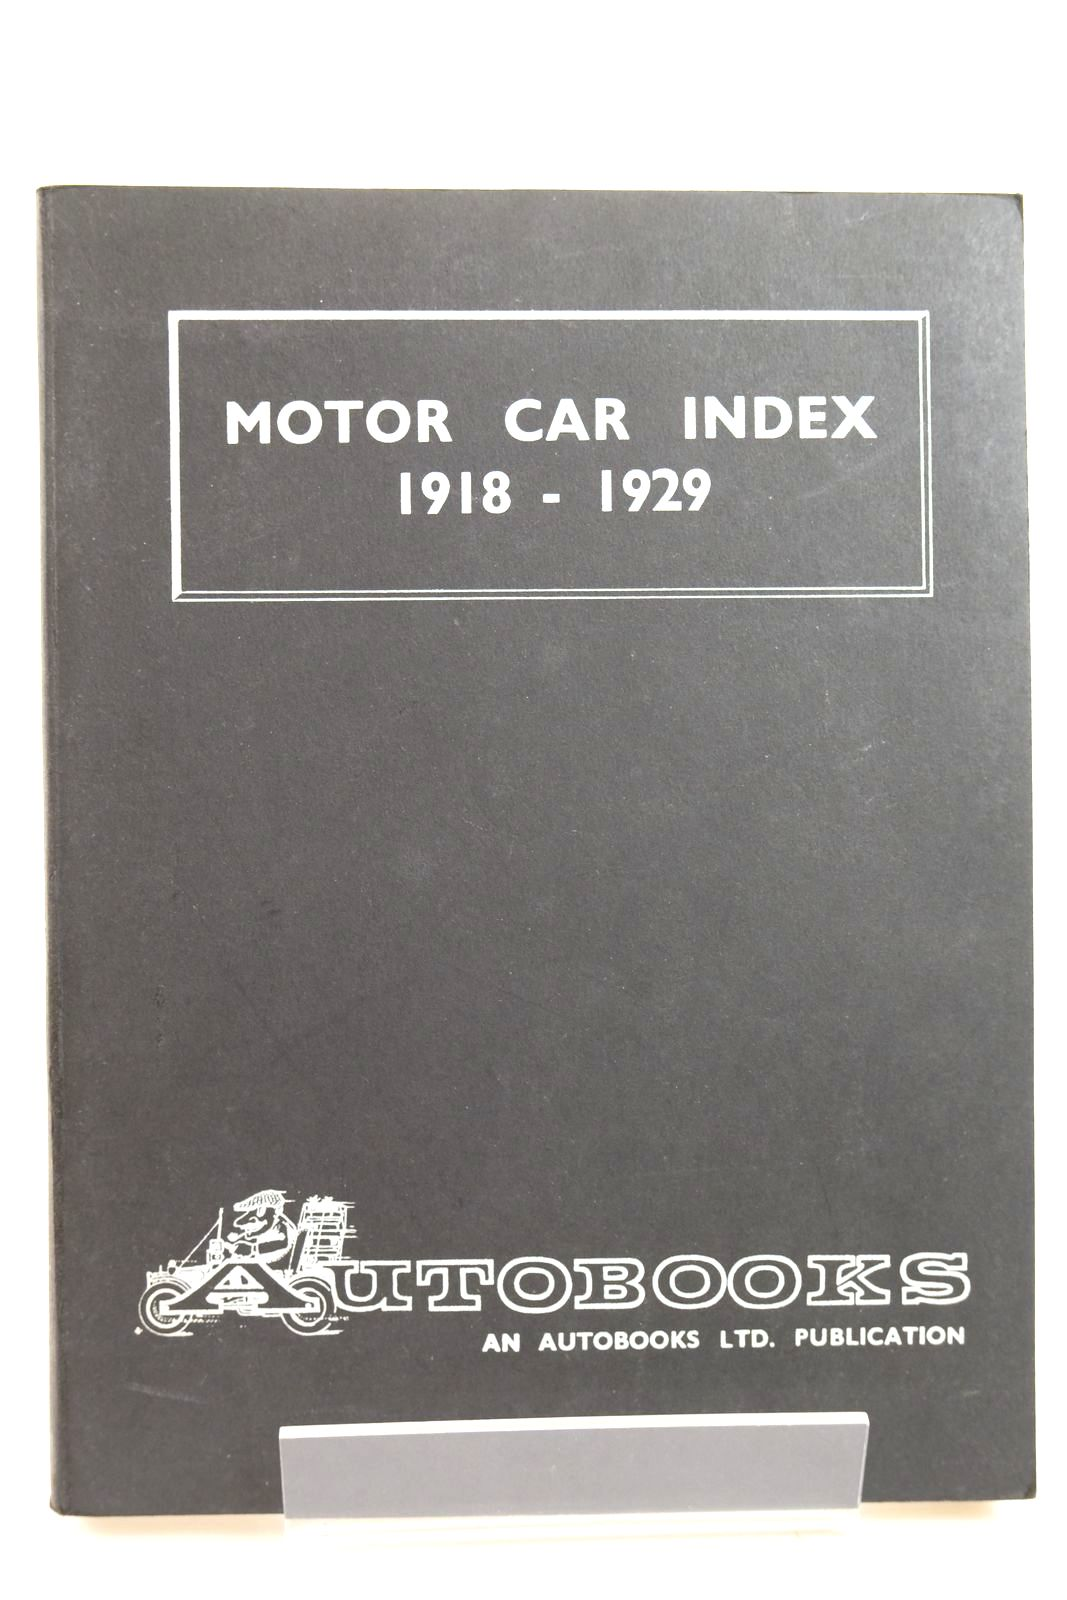 Photo of MOTOR CAR INDEX 1918 - 1929 written by Ball, Kenneth published by Autobooks Ltd. (STOCK CODE: 2132229)  for sale by Stella & Rose's Books